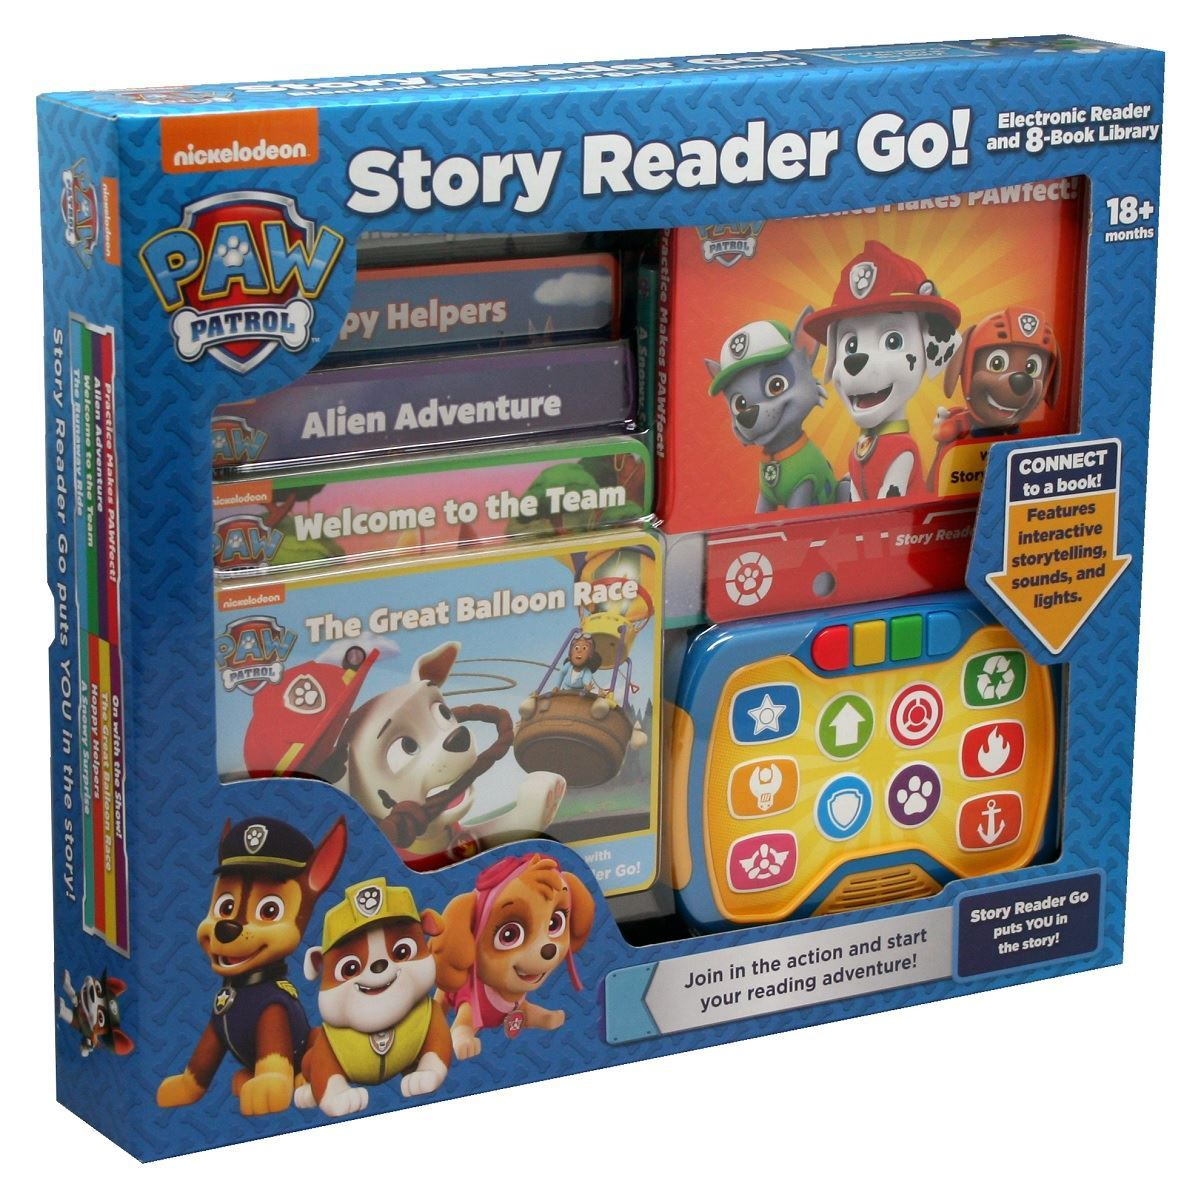 Nickelodeon PAW Patrol Story Reader Go Electonic Reader and 8-Book Library Phoenix International Publications 9781503725645